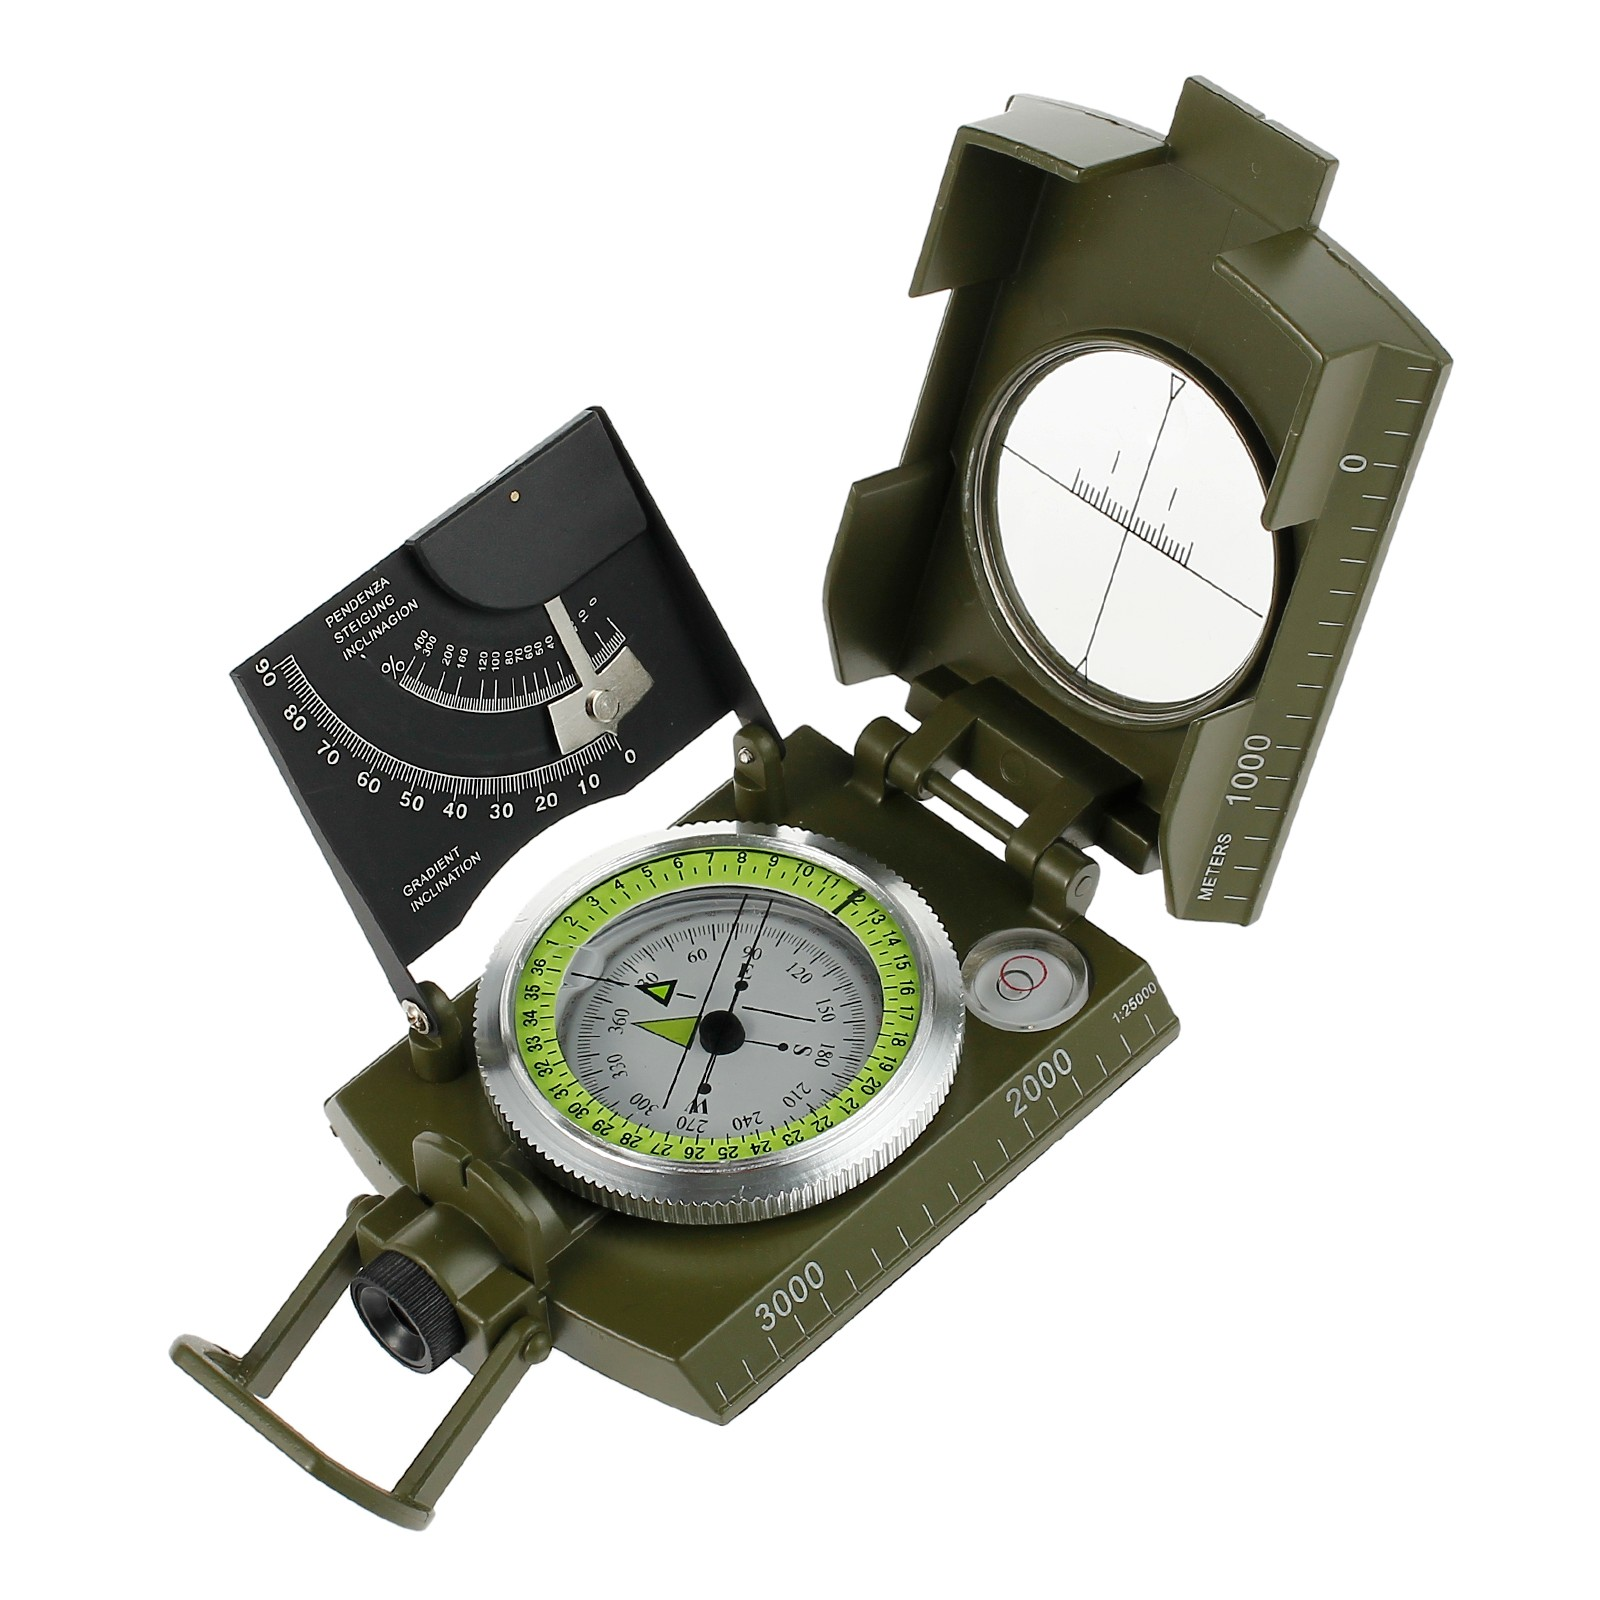 ESYNIC Professional Map Compass Military Army Metal Sighting Compass Folding Pocket Size Navigation Compass for Camping... by